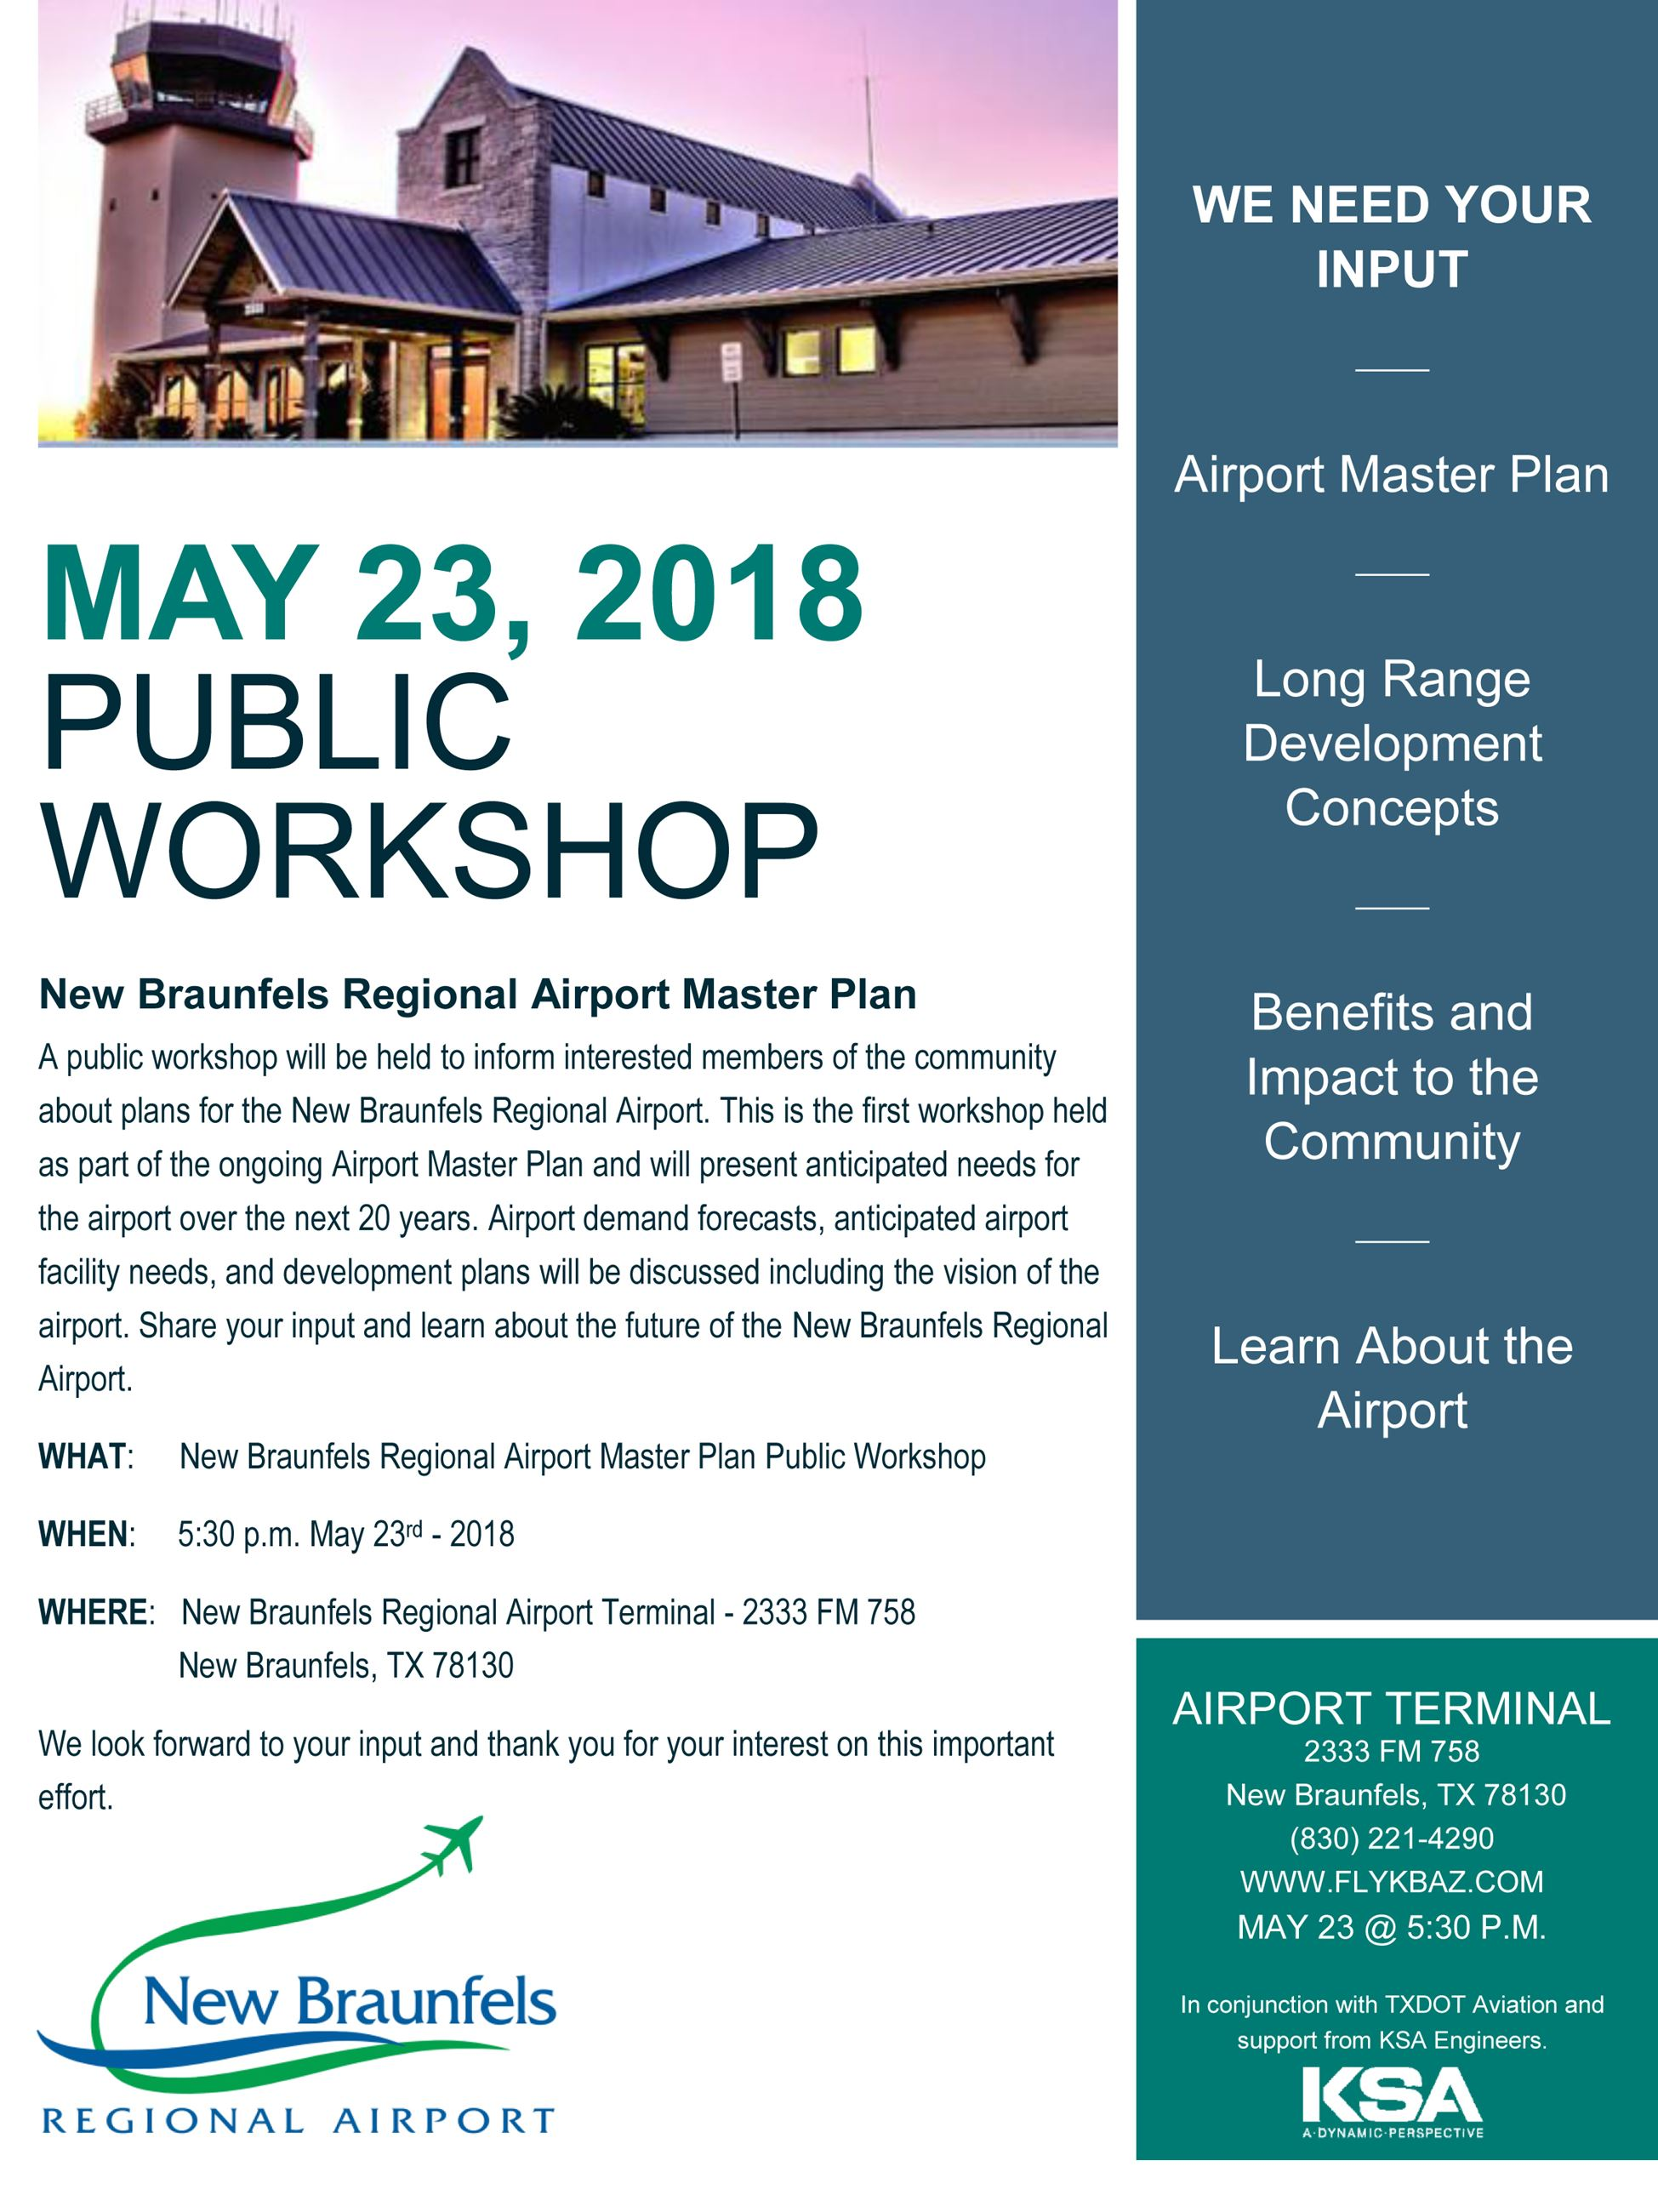 Airport Master Plan Public Meeting flyer